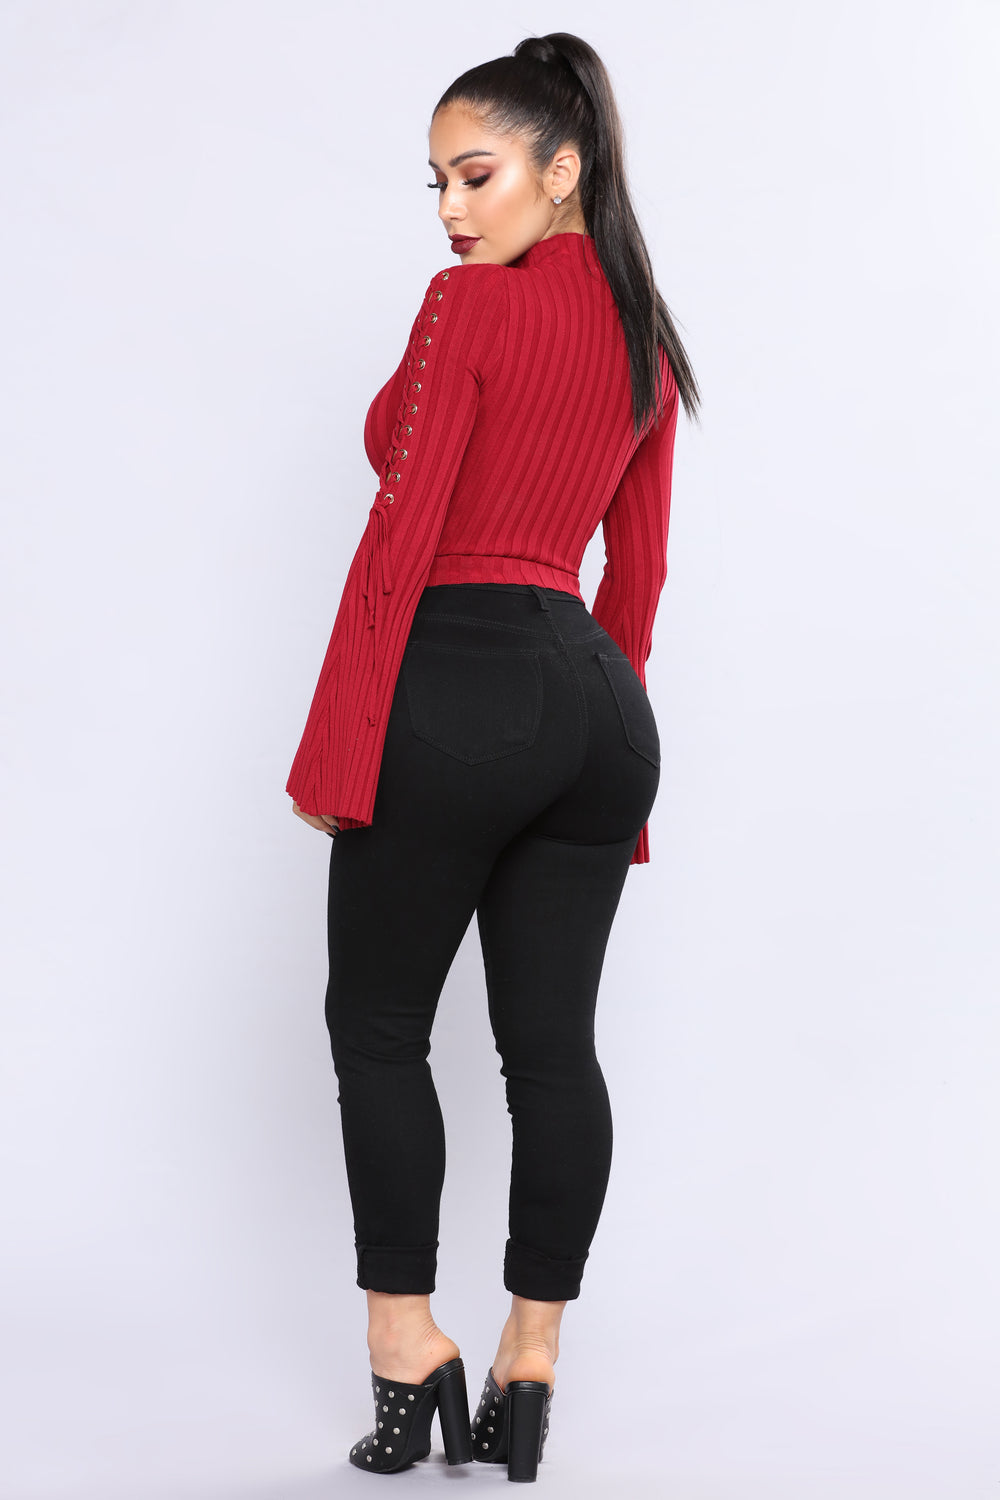 Next To Me Mock Neck Sweater - Red